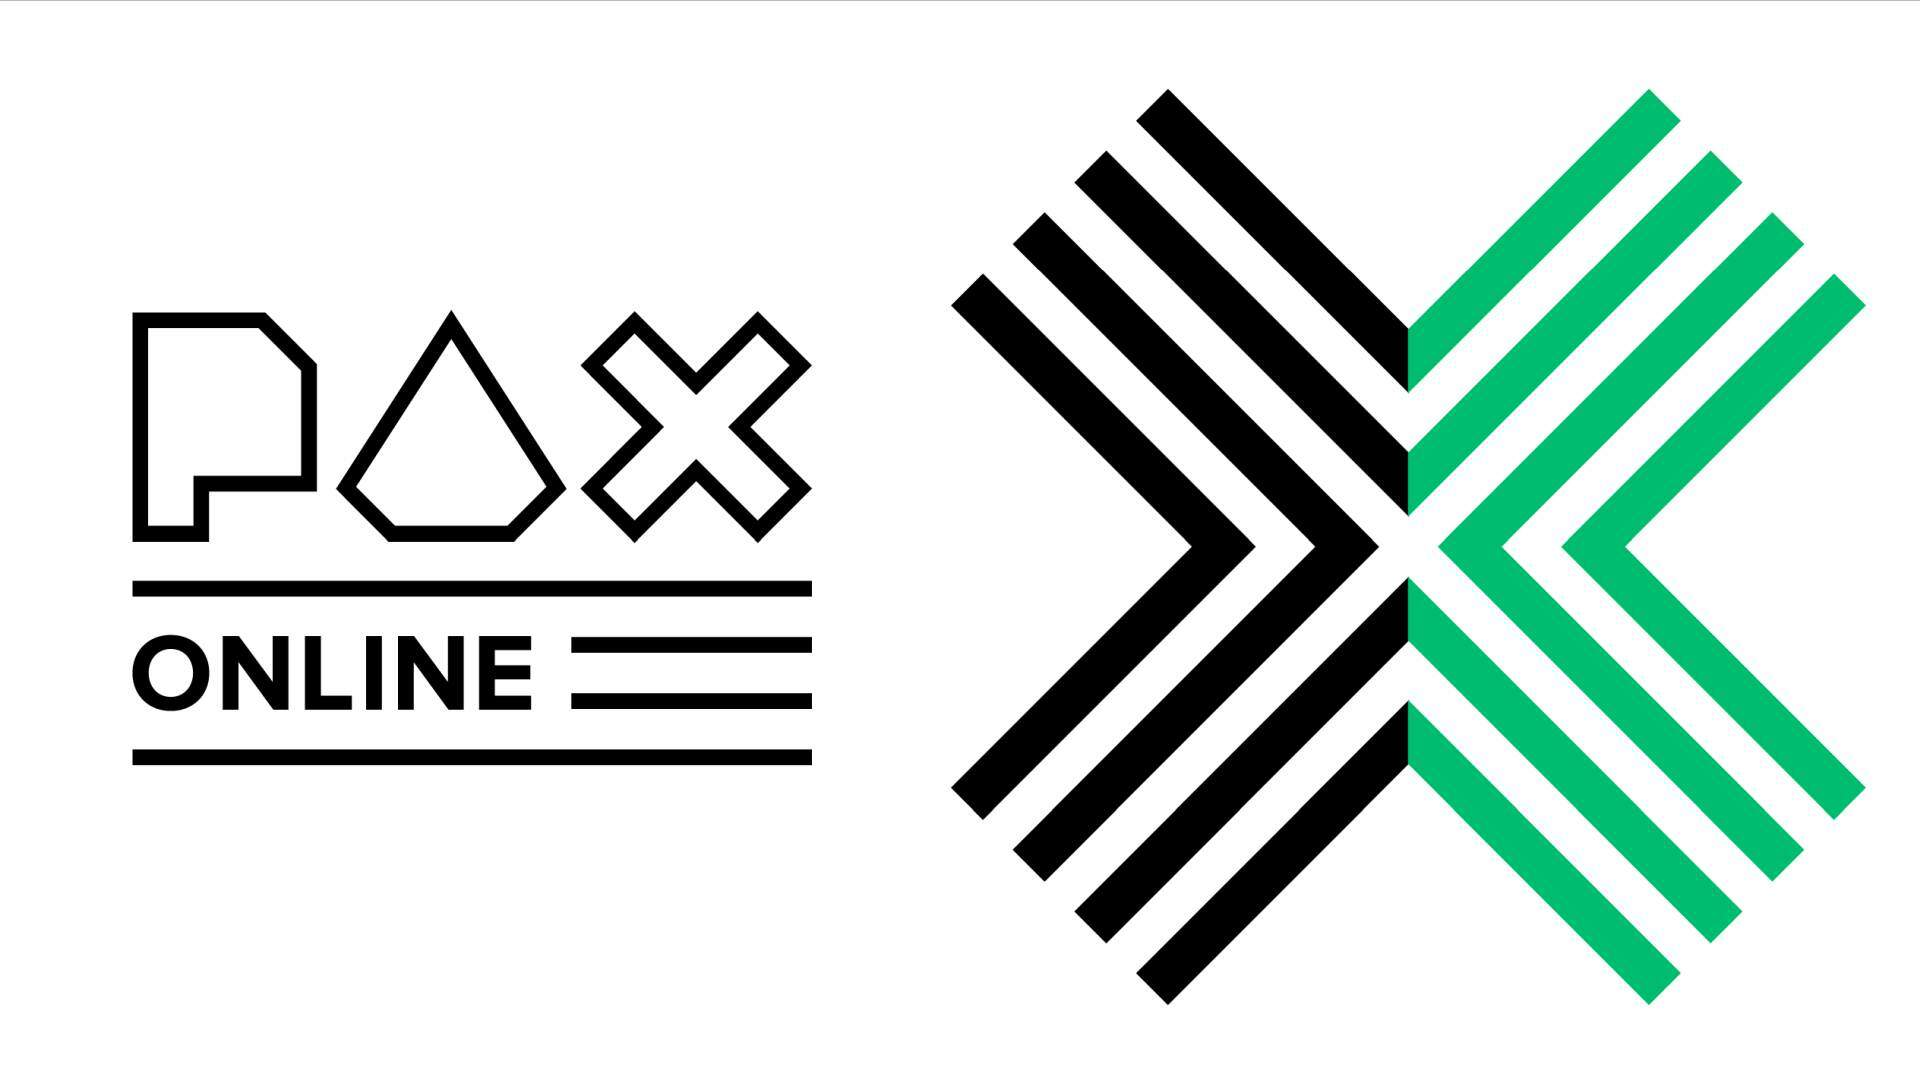 PAX Online Starts Sept. 12, And the Deadline for Panel Submission is Coming Up Fast